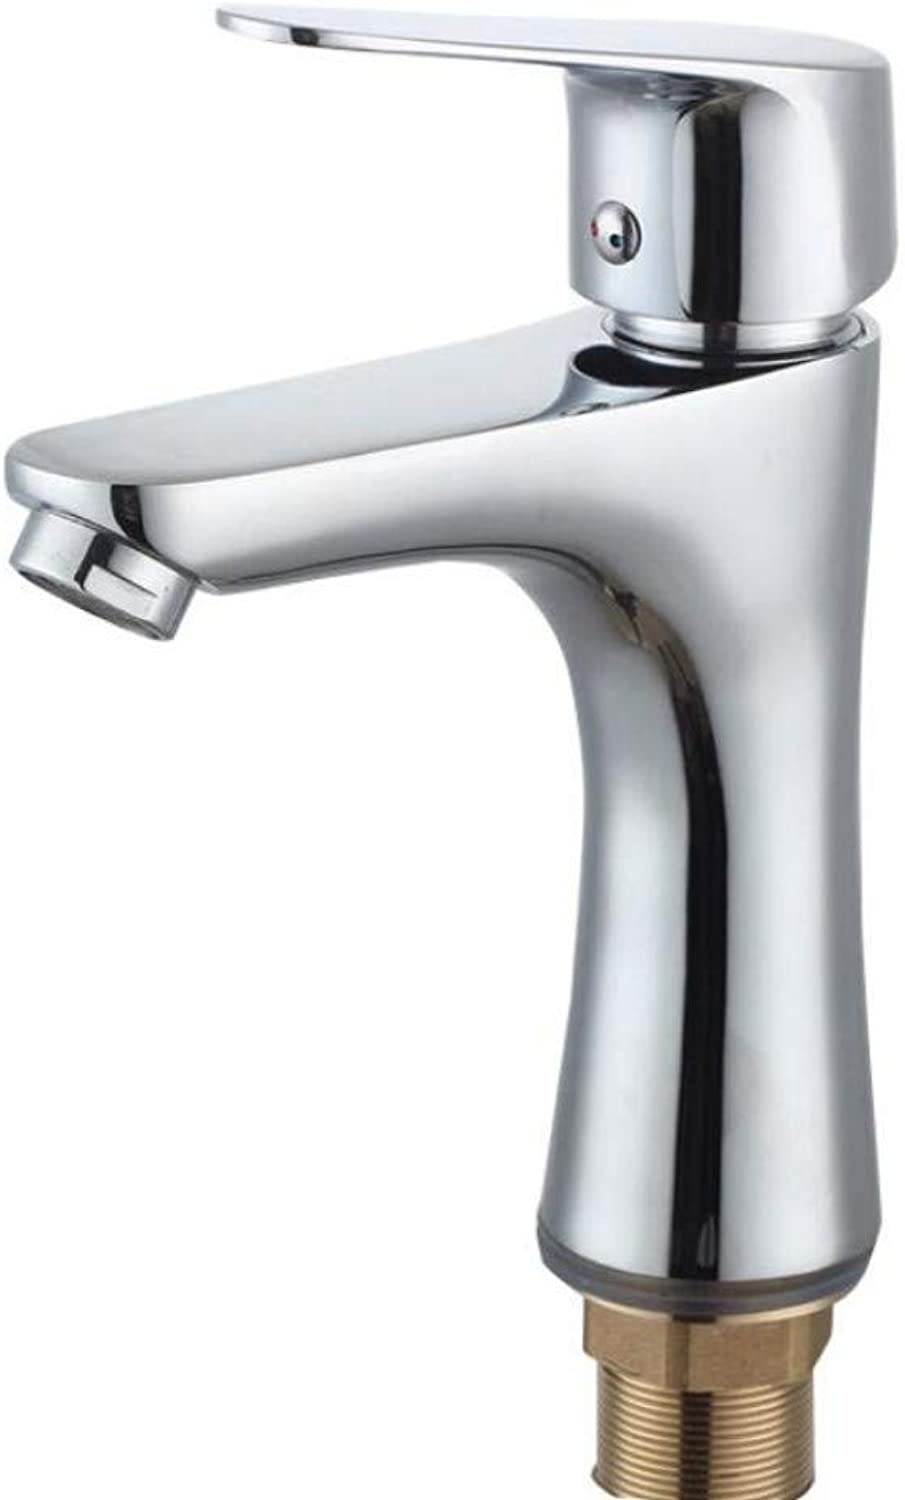 Bathroom Sink Basin Lever Mixer Tap Bathroom Washbasin Faucet Copper Washbasin Single Hole Cold and Hot Mixing Faucet